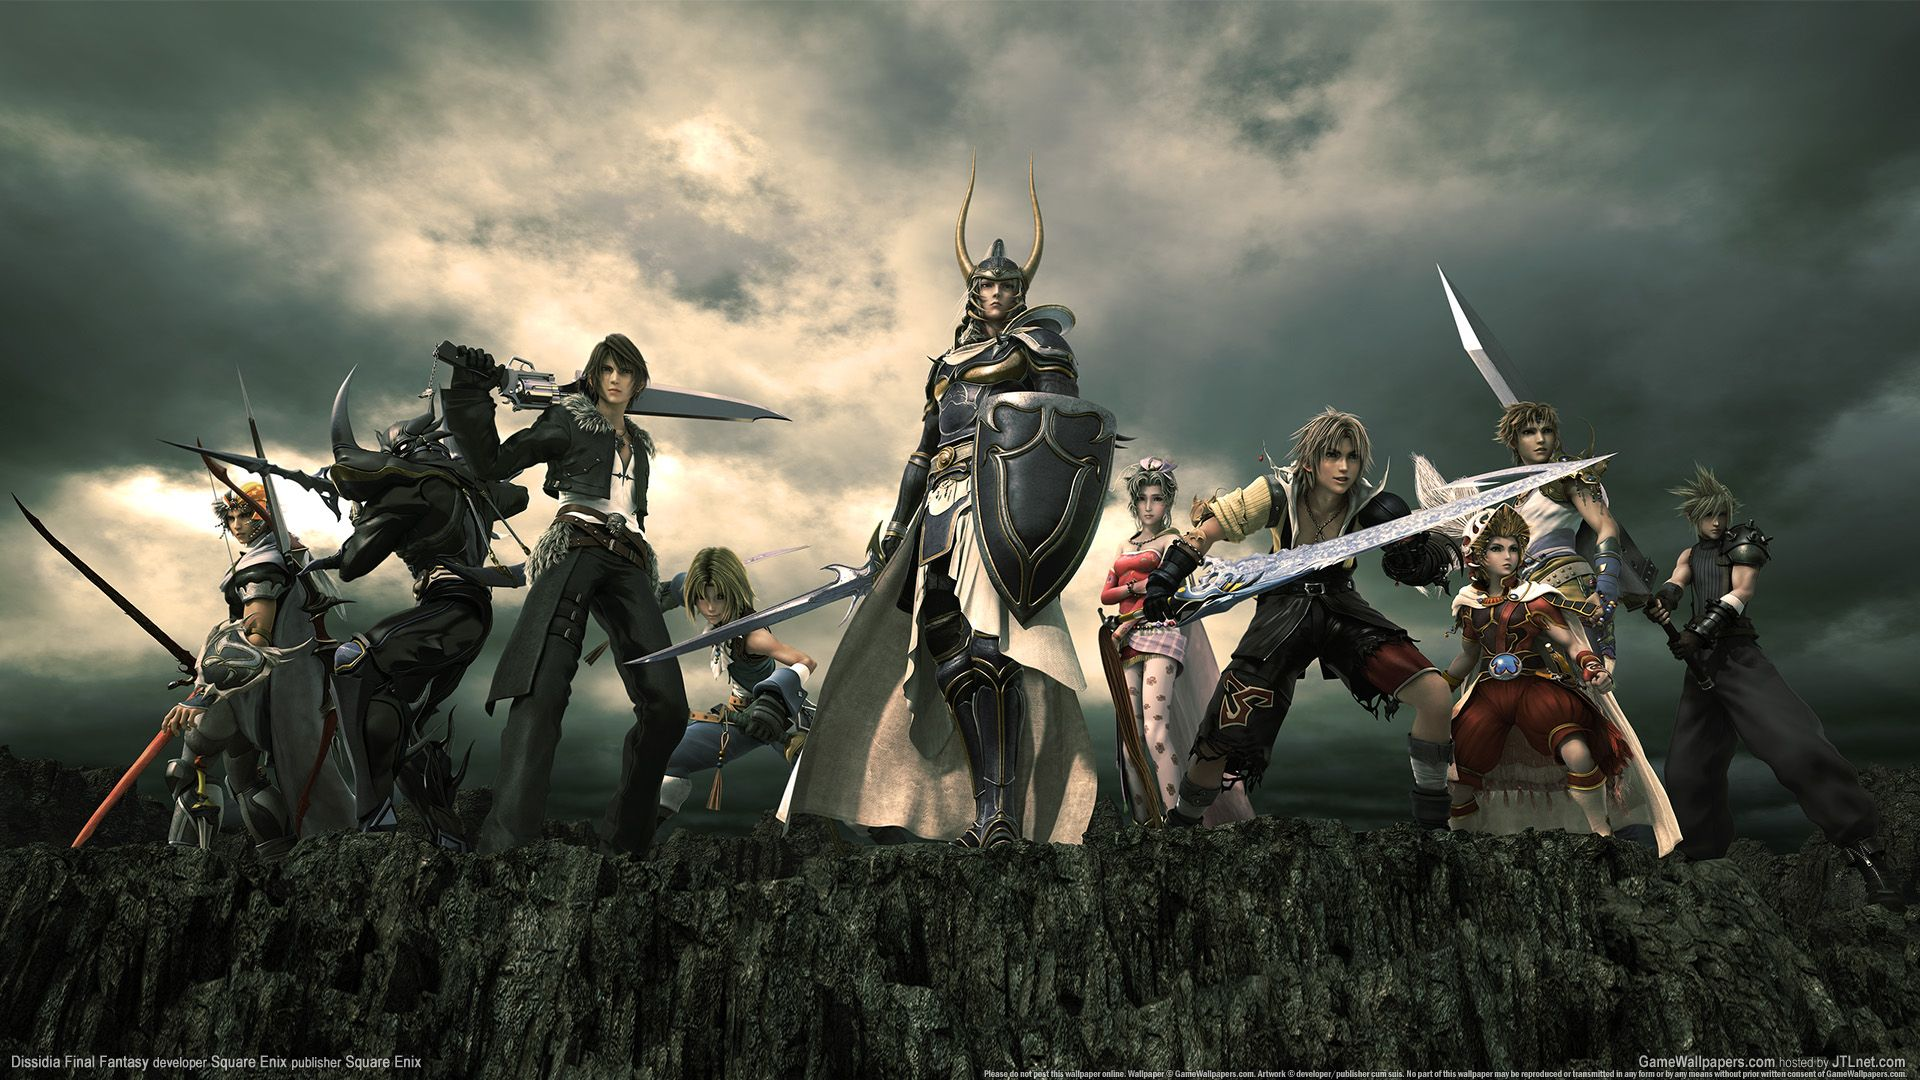 Dragon Fantasy Wallpaper Download This Wallpaper Use For Facebook Cover Edit This Wall Final Fantasy Xv Wallpapers Final Fantasy Characters Final Fantasy Art